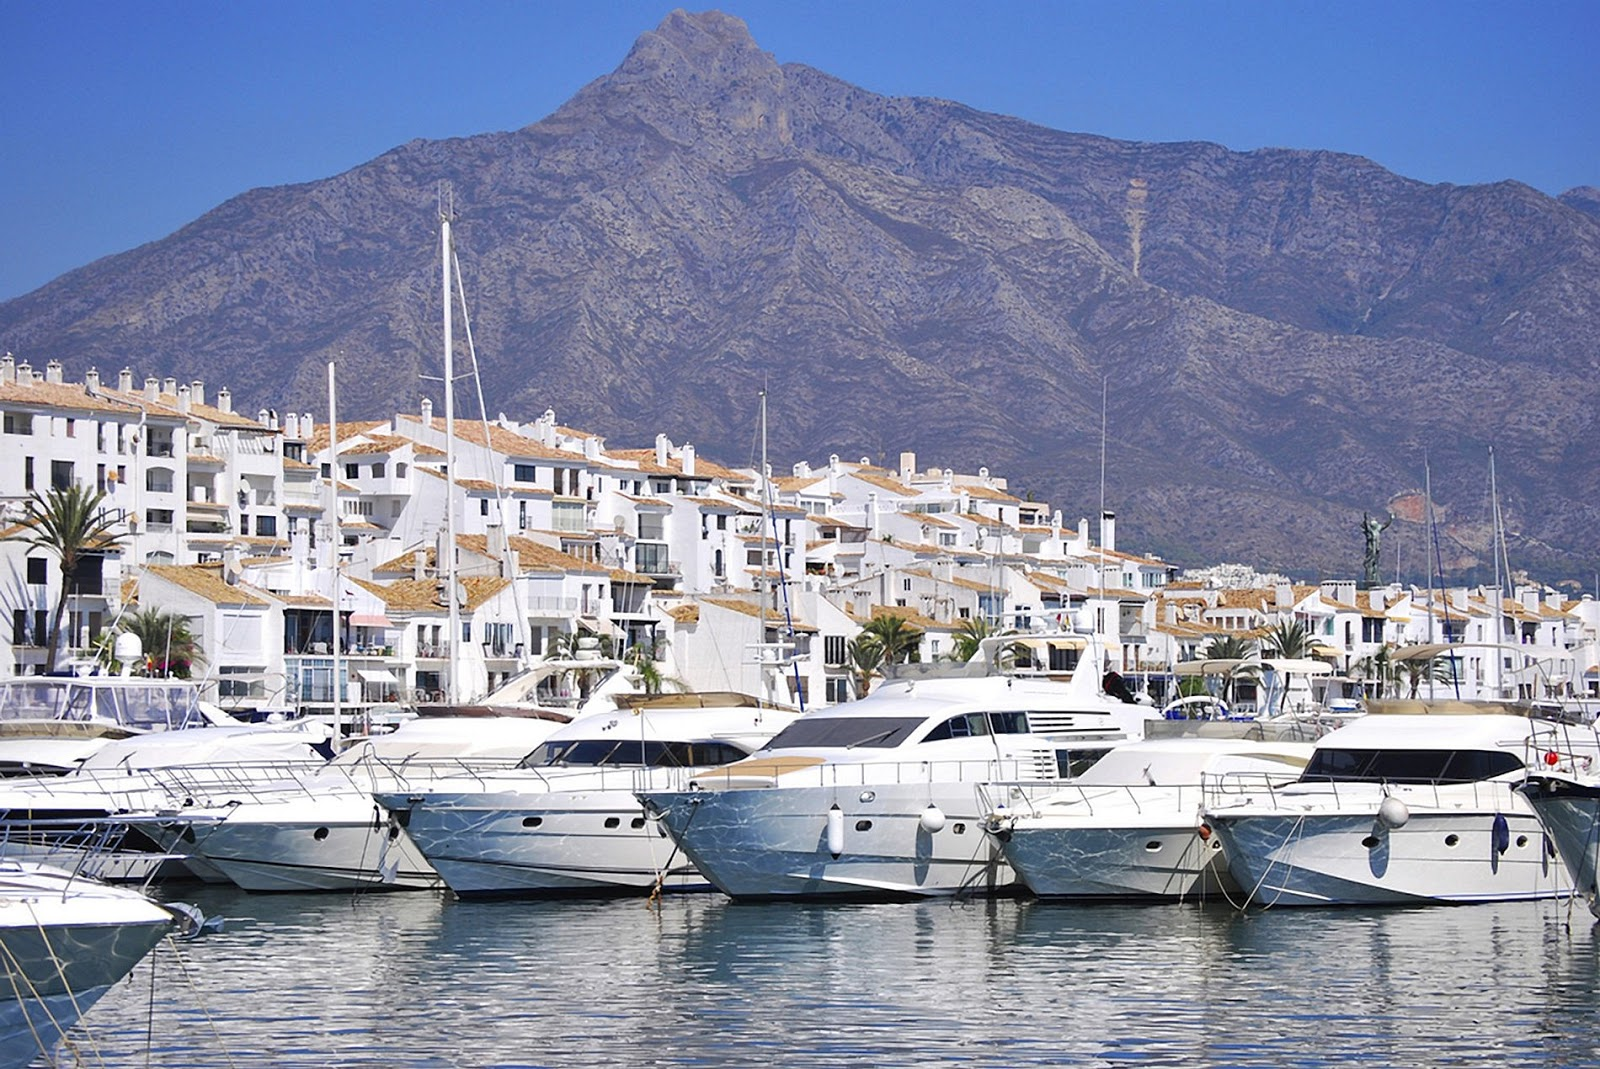 yachts boats mountains marina Puerto Banus